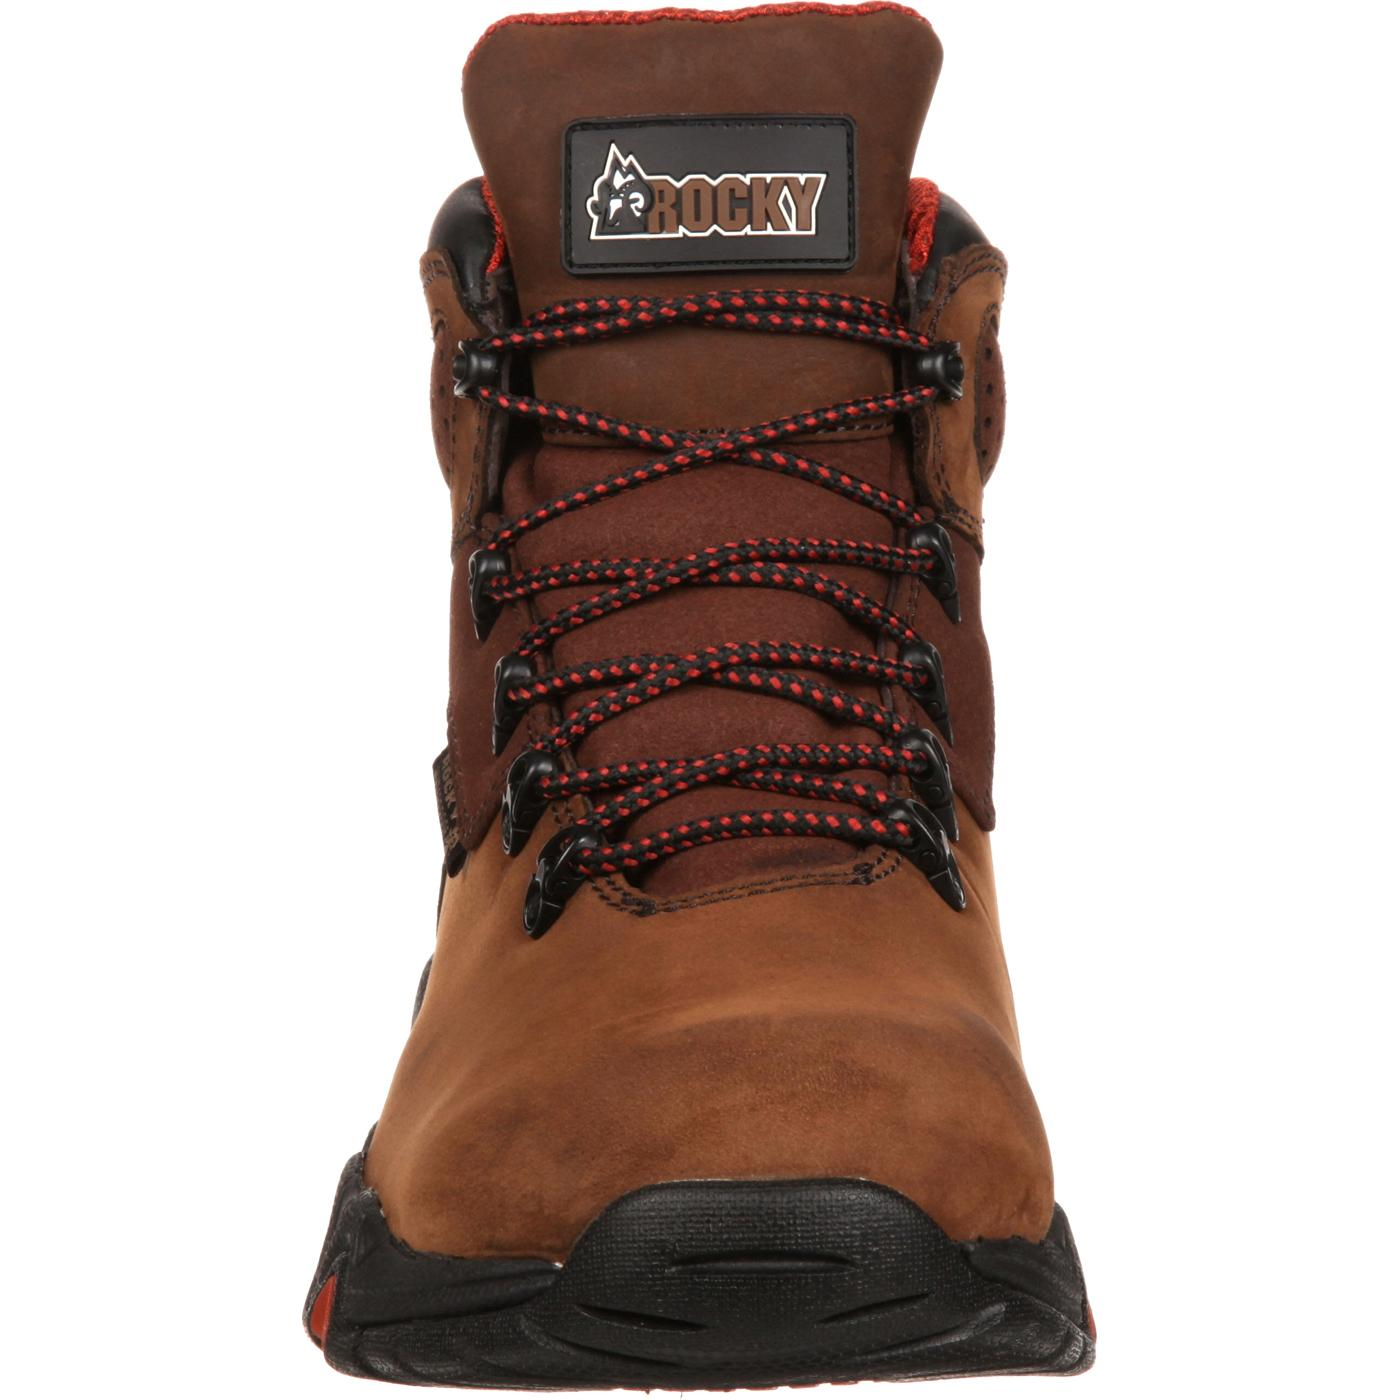 Men's Rocky Bigfoot Waterproof Hiker Work Boot, #RKYK062